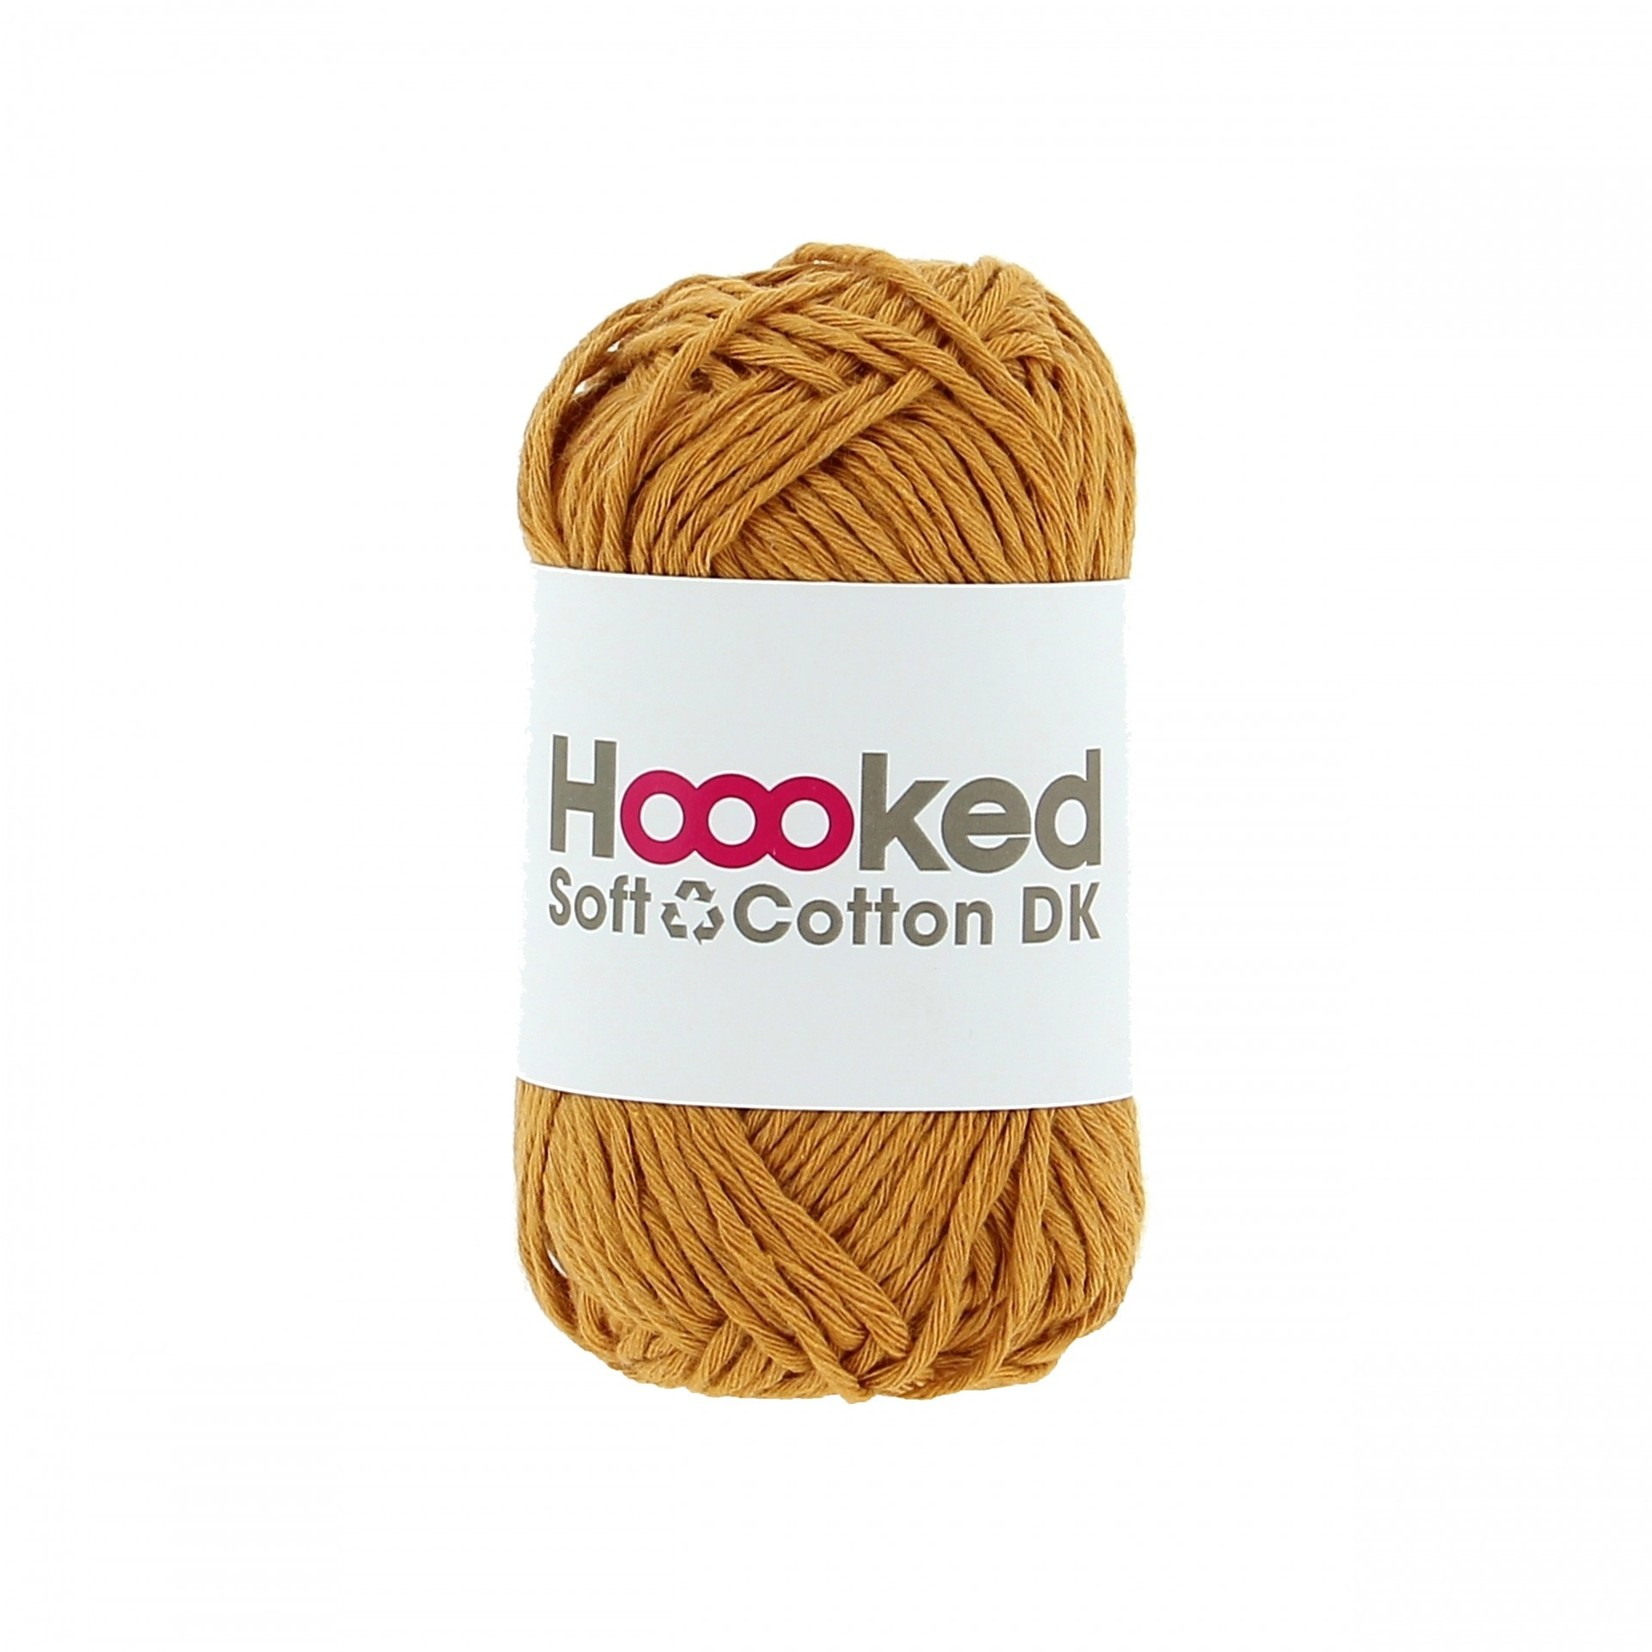 Hoooked Hoooked Soft Cotton DK Sienna Ocre 50 gr. / 85 m.